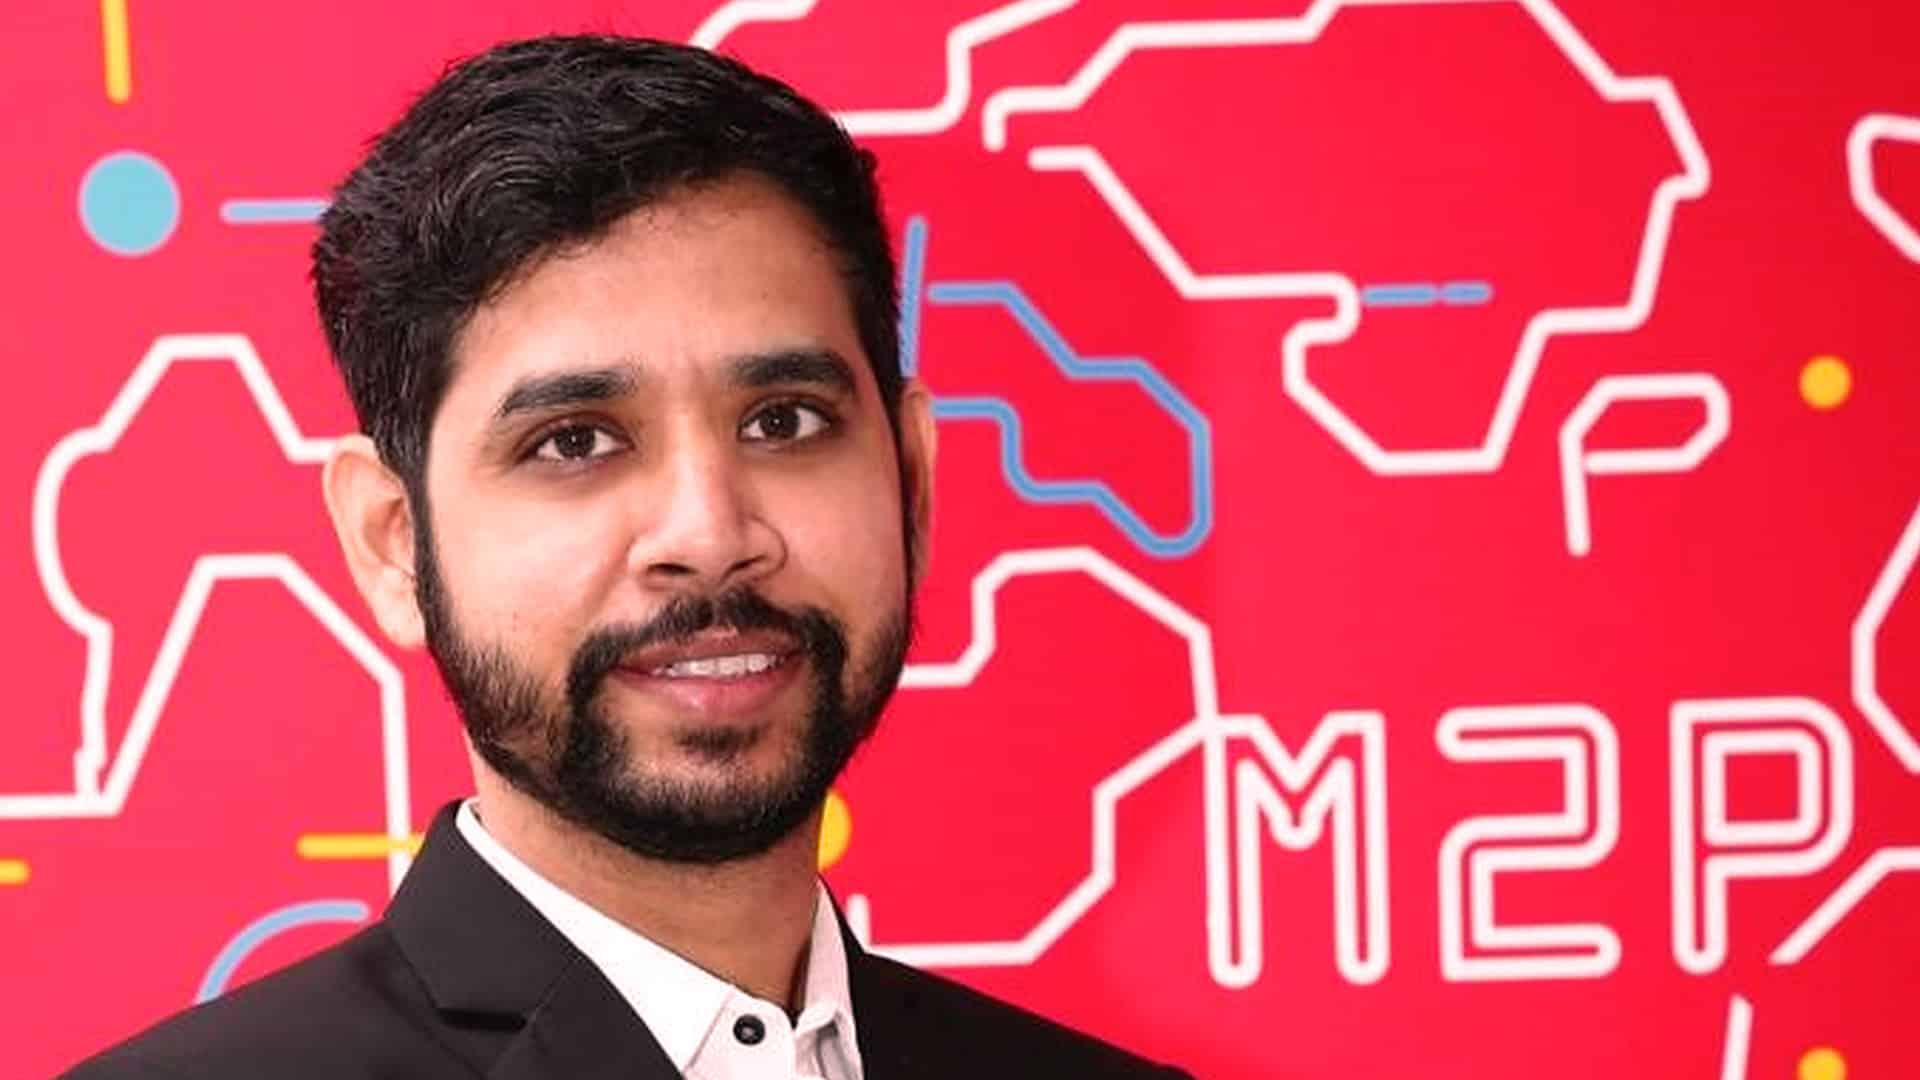 M2P Fintech raises $35 mn from Tiger Global, others